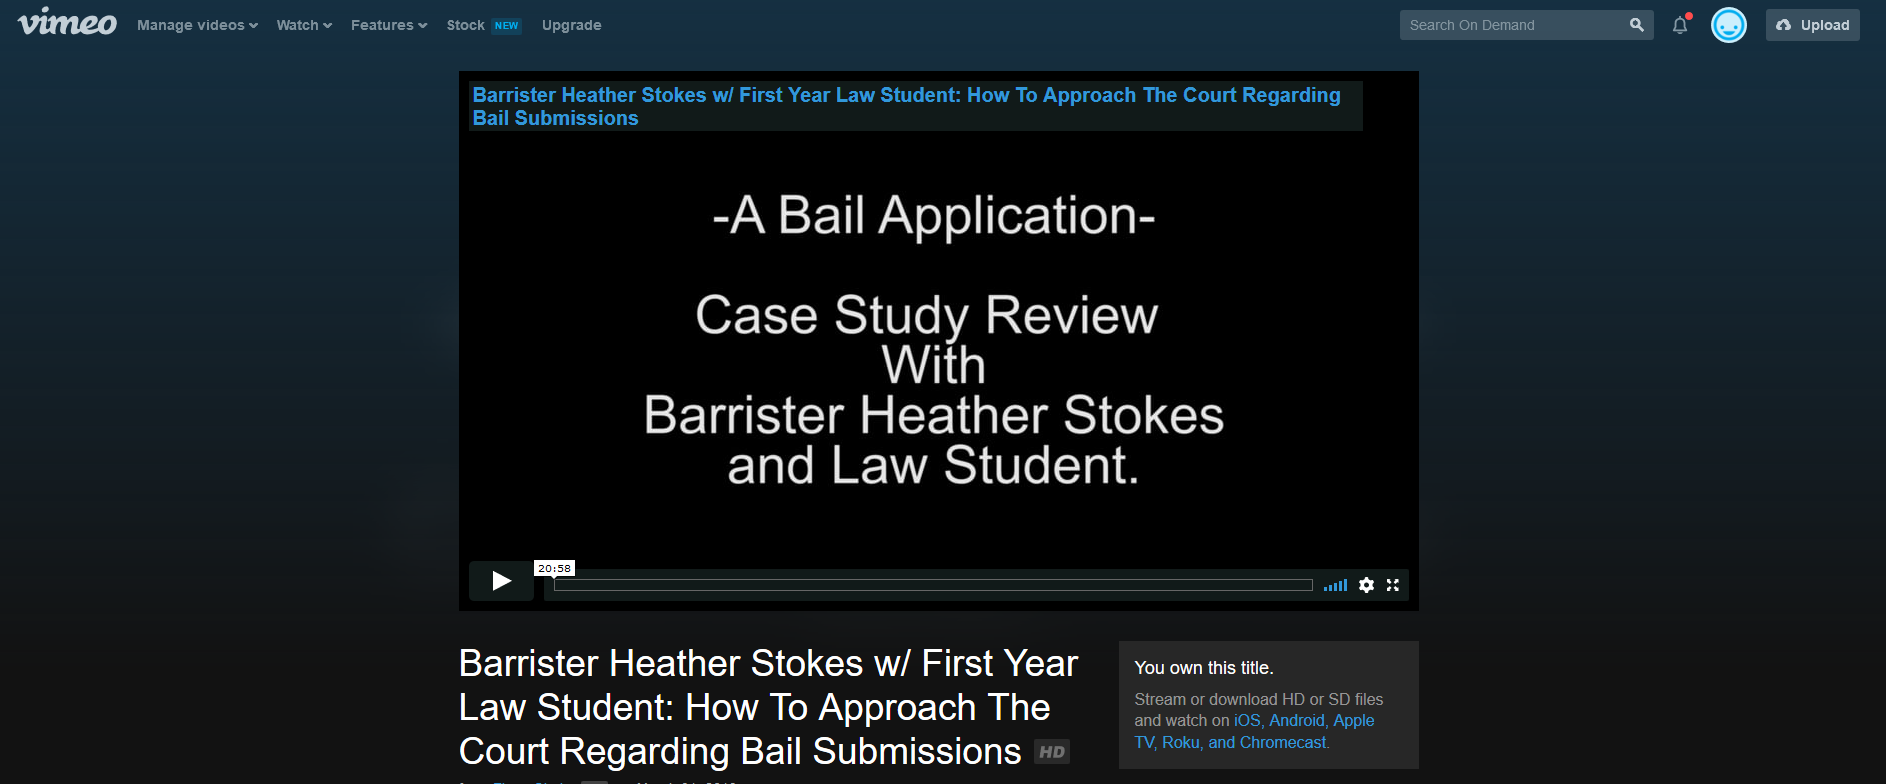 Screenshot_2019-05-22 Watch Barrister Heather Stokes w First Year Law Student How To Approach The Court Regarding Bail Subm[...].png